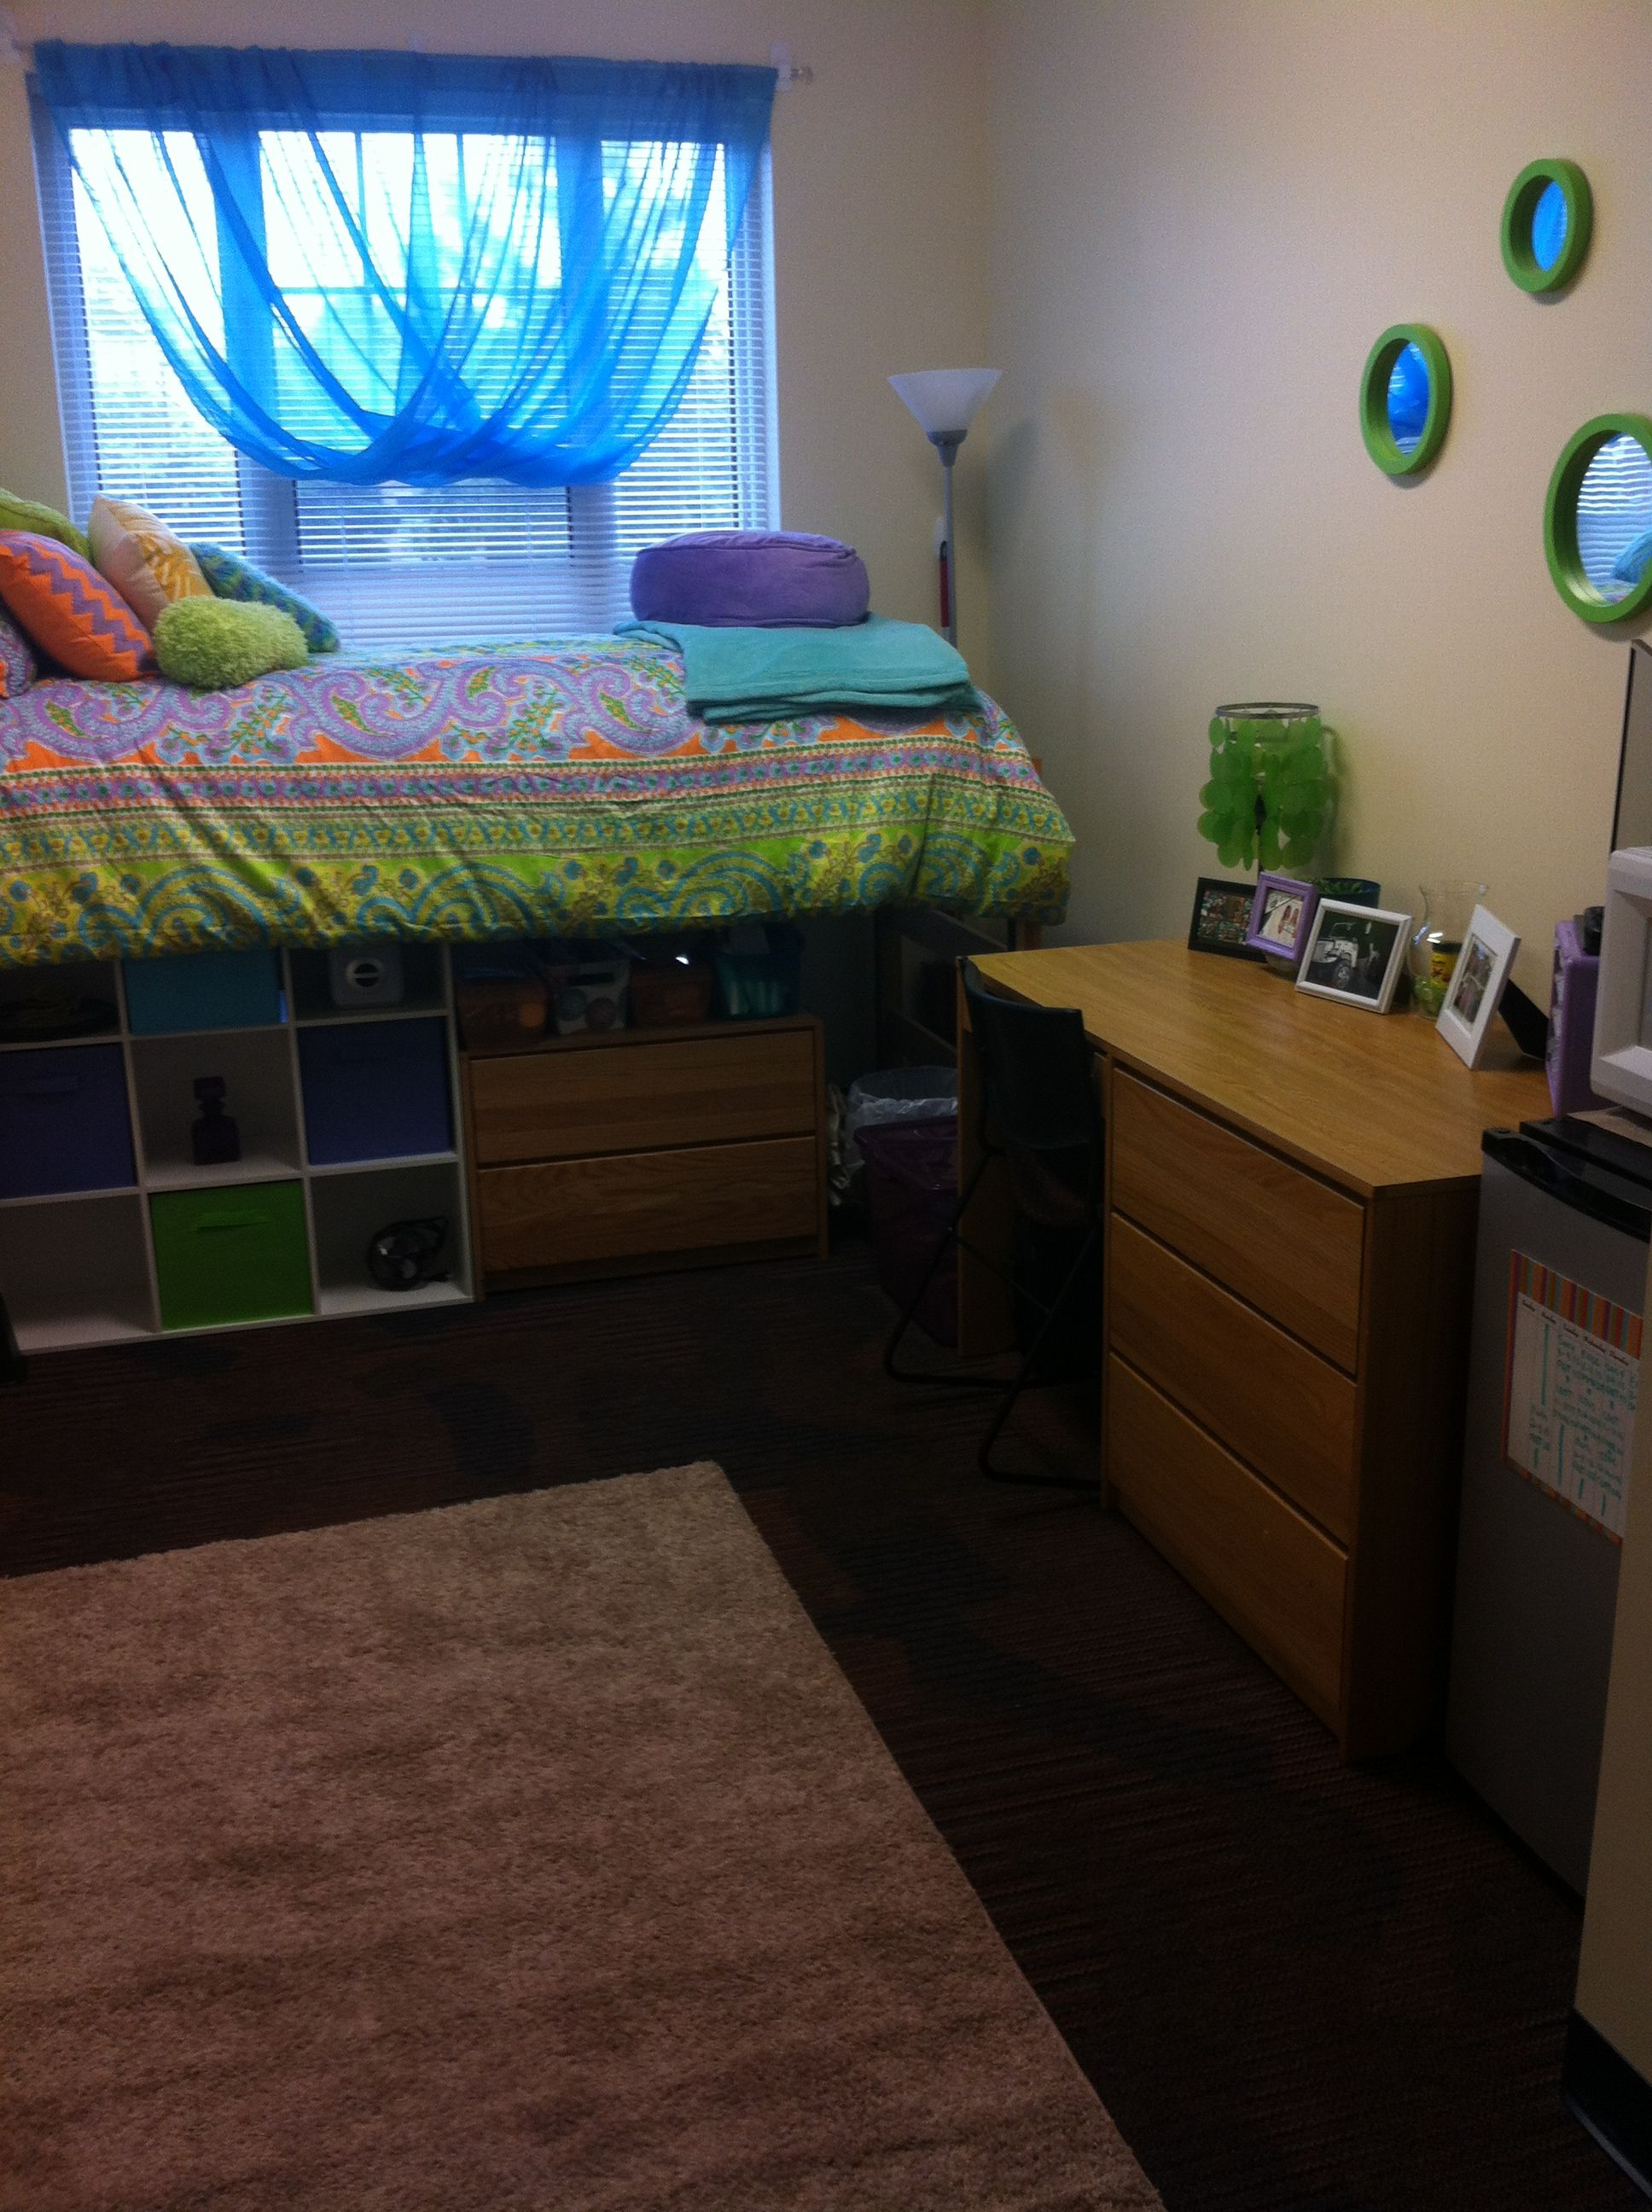 Dorm Room Layouts: Layout For A Single Room Or Suite Style College Dorm